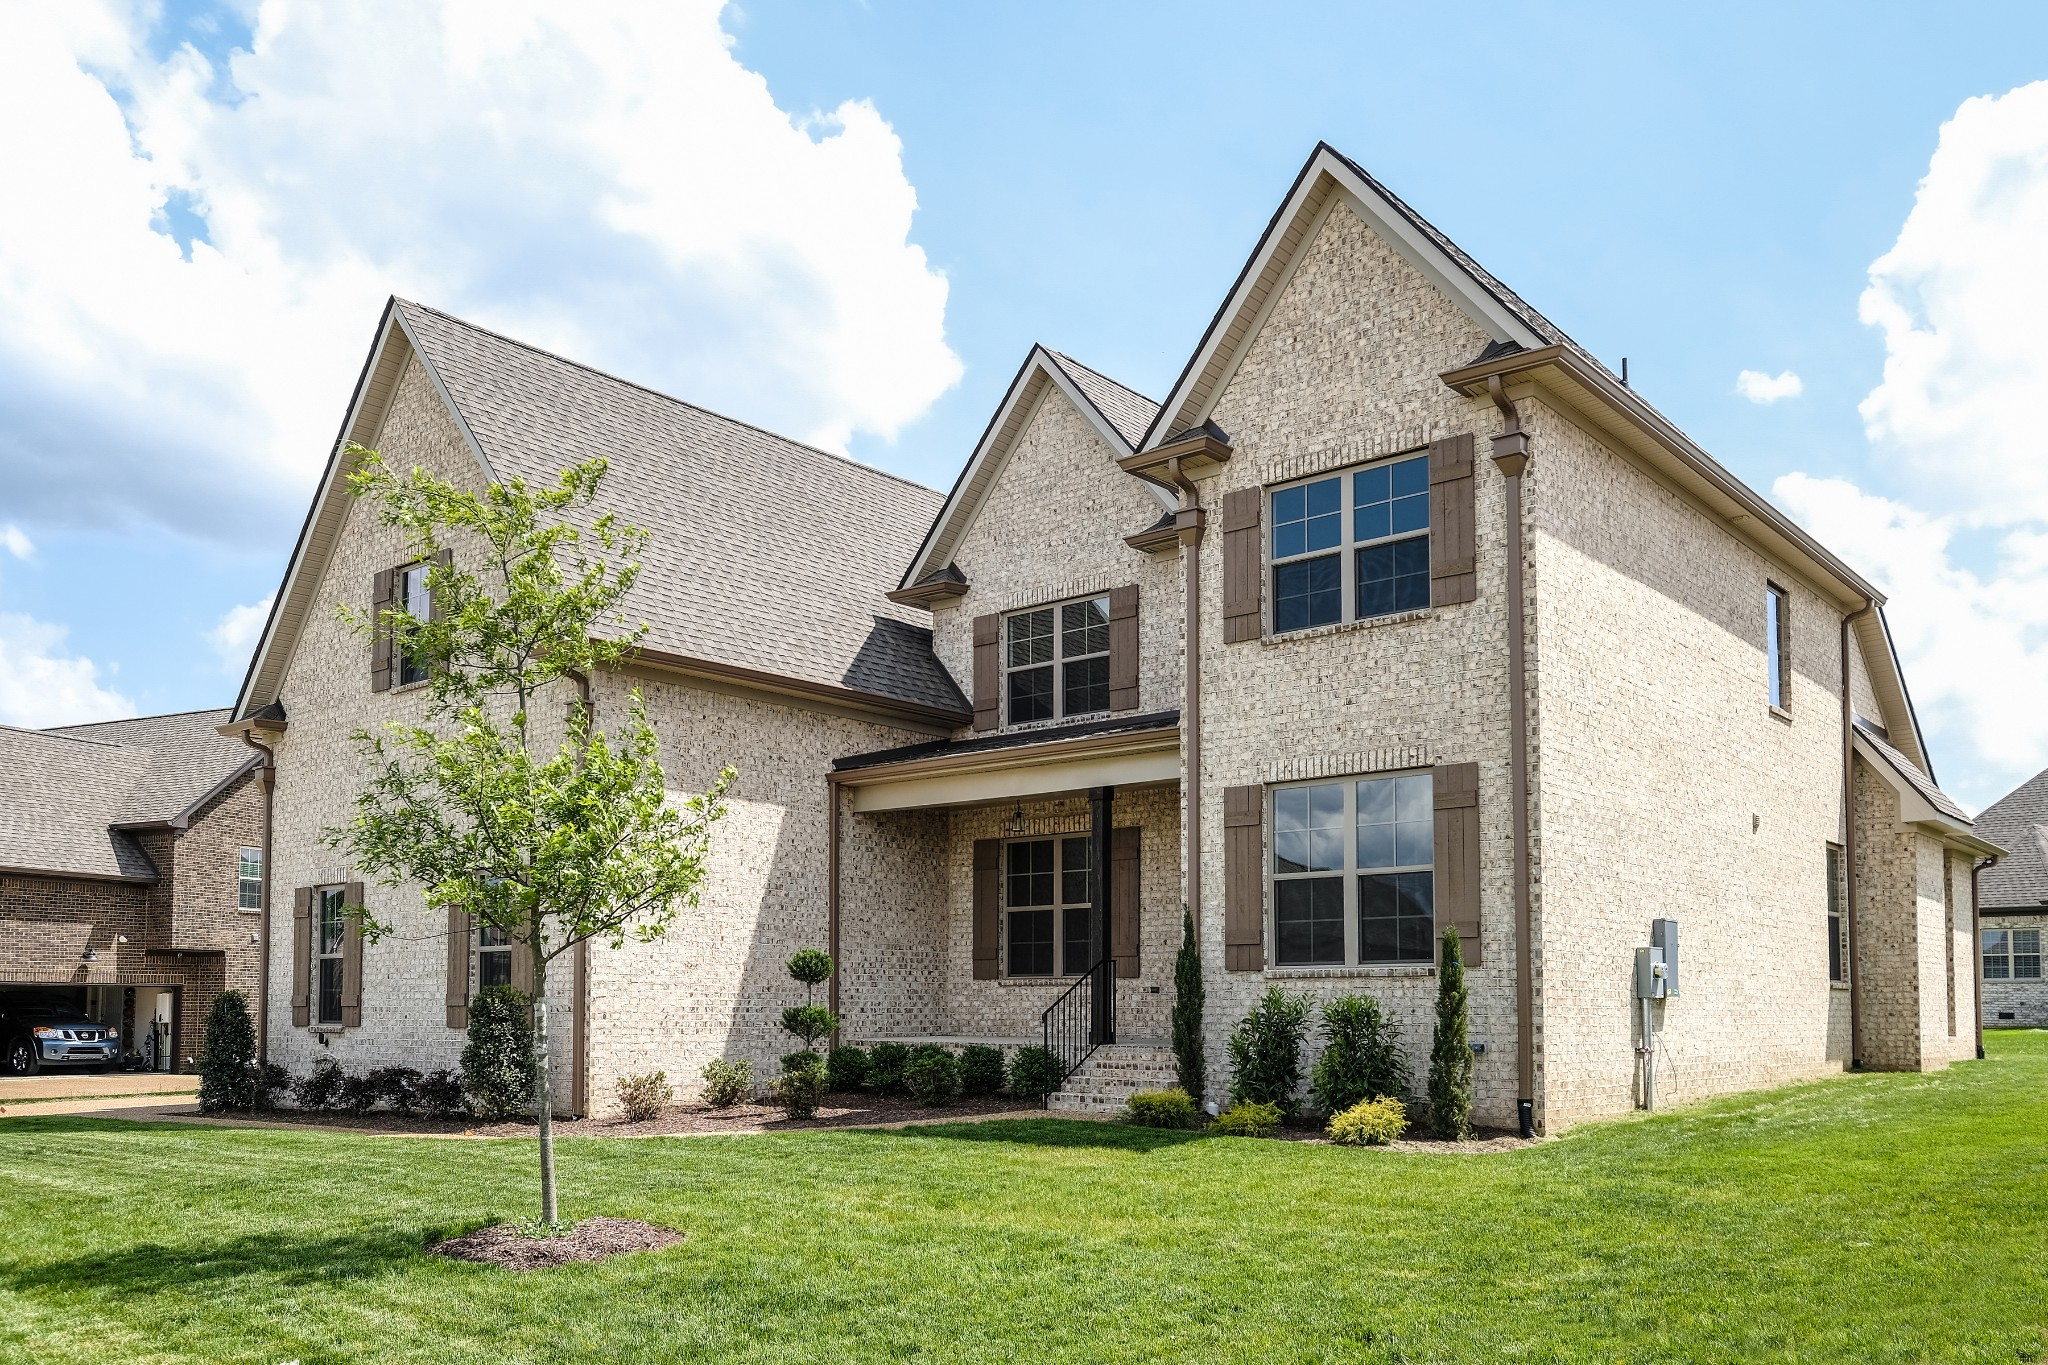 5007 Brill Lane (Lot 283), Spring Hill, TN 37174 - Spring Hill, TN real estate listing